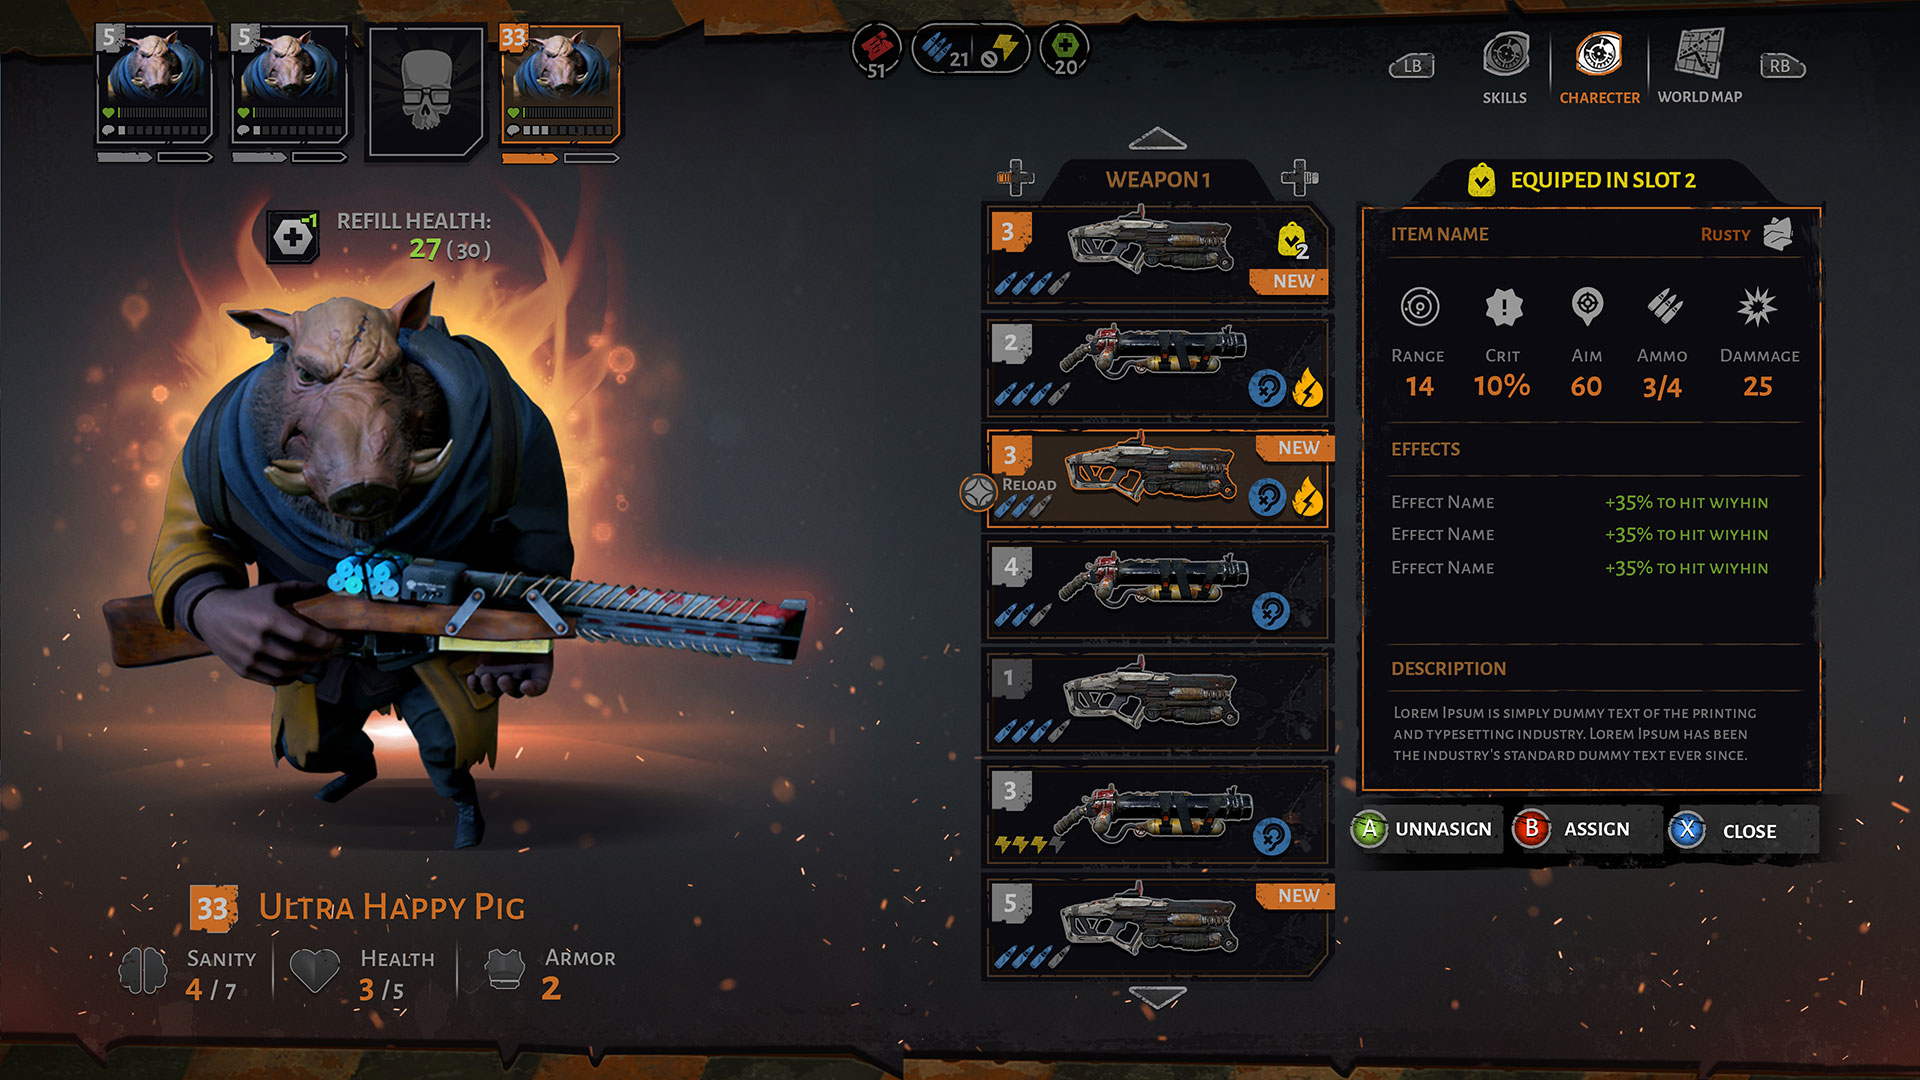 funcom-ui-gameinterface-gameart-roadtoeden-ps4-xbox-tactical-adventure-game-xcom-turn-based-gameux-game-experience-design09